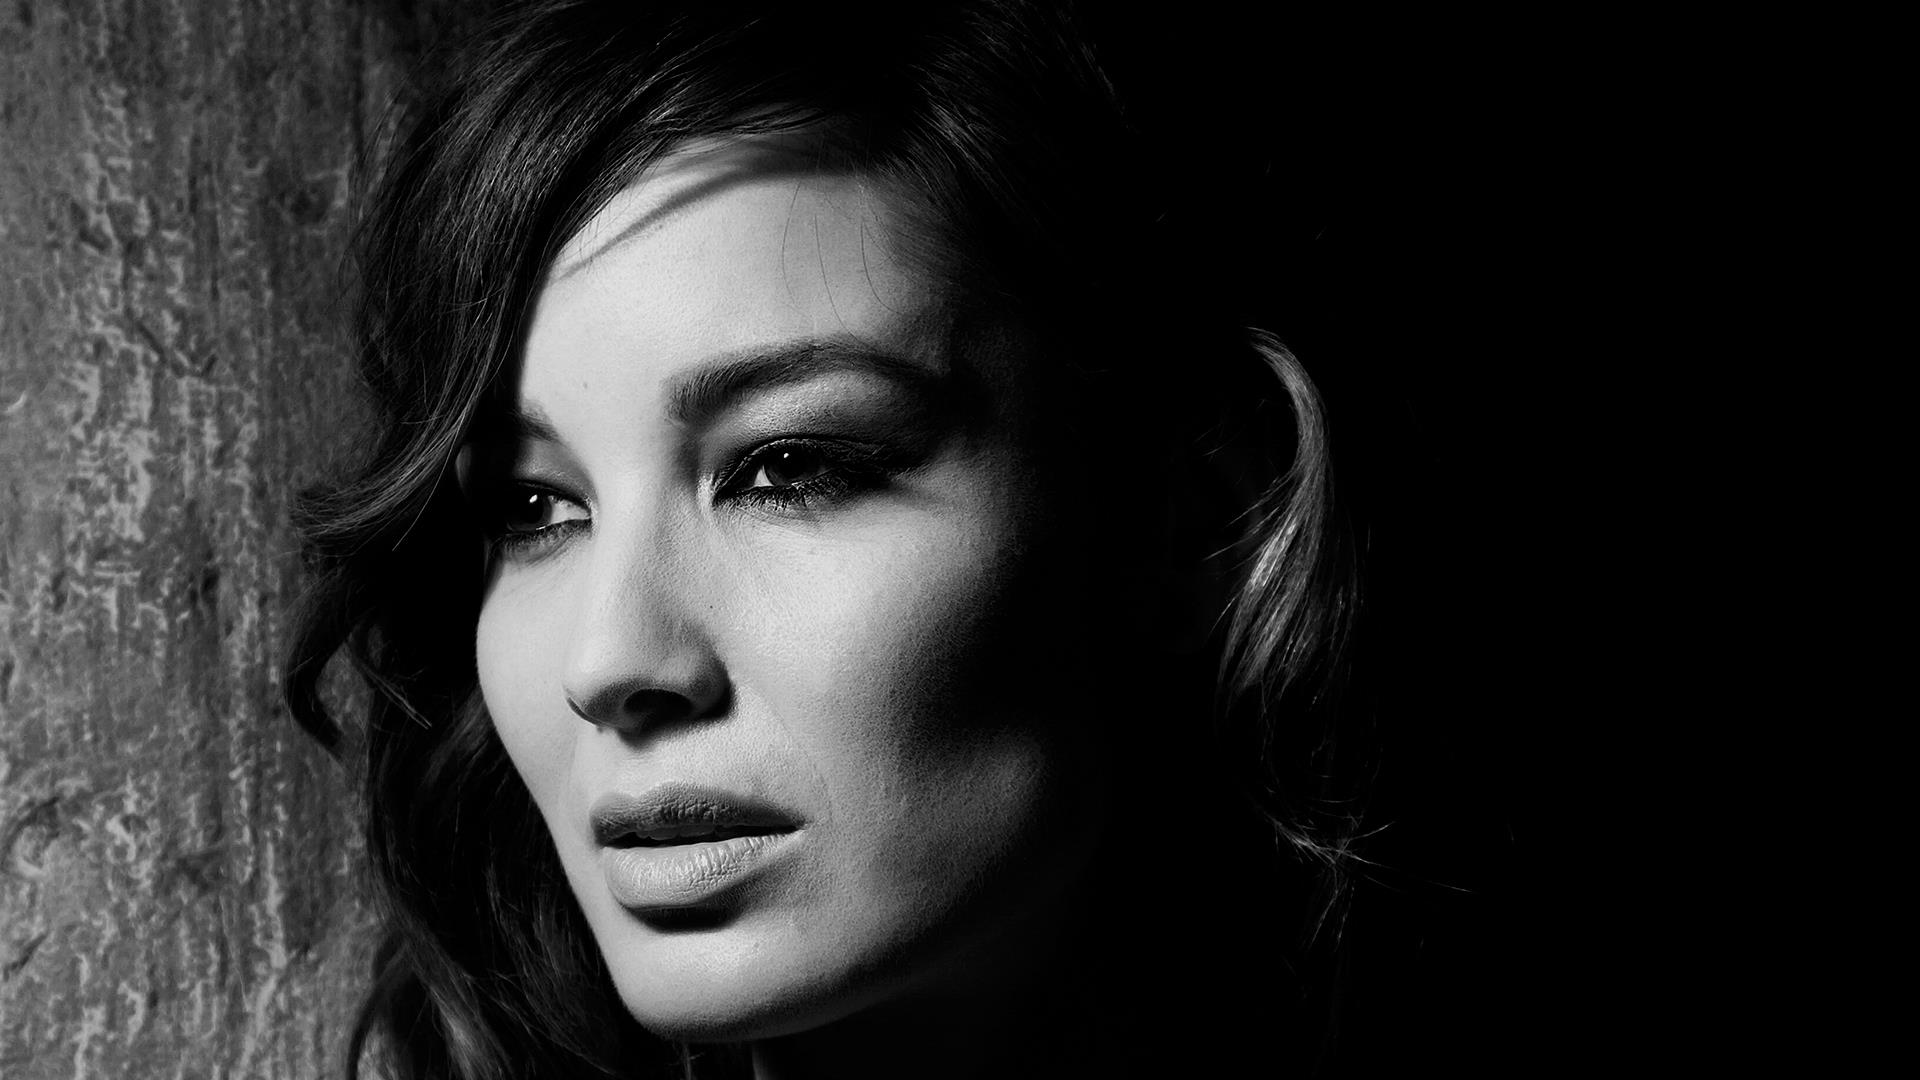 You are viewing wallpaper titled berenice marlohe lookig side black n white face